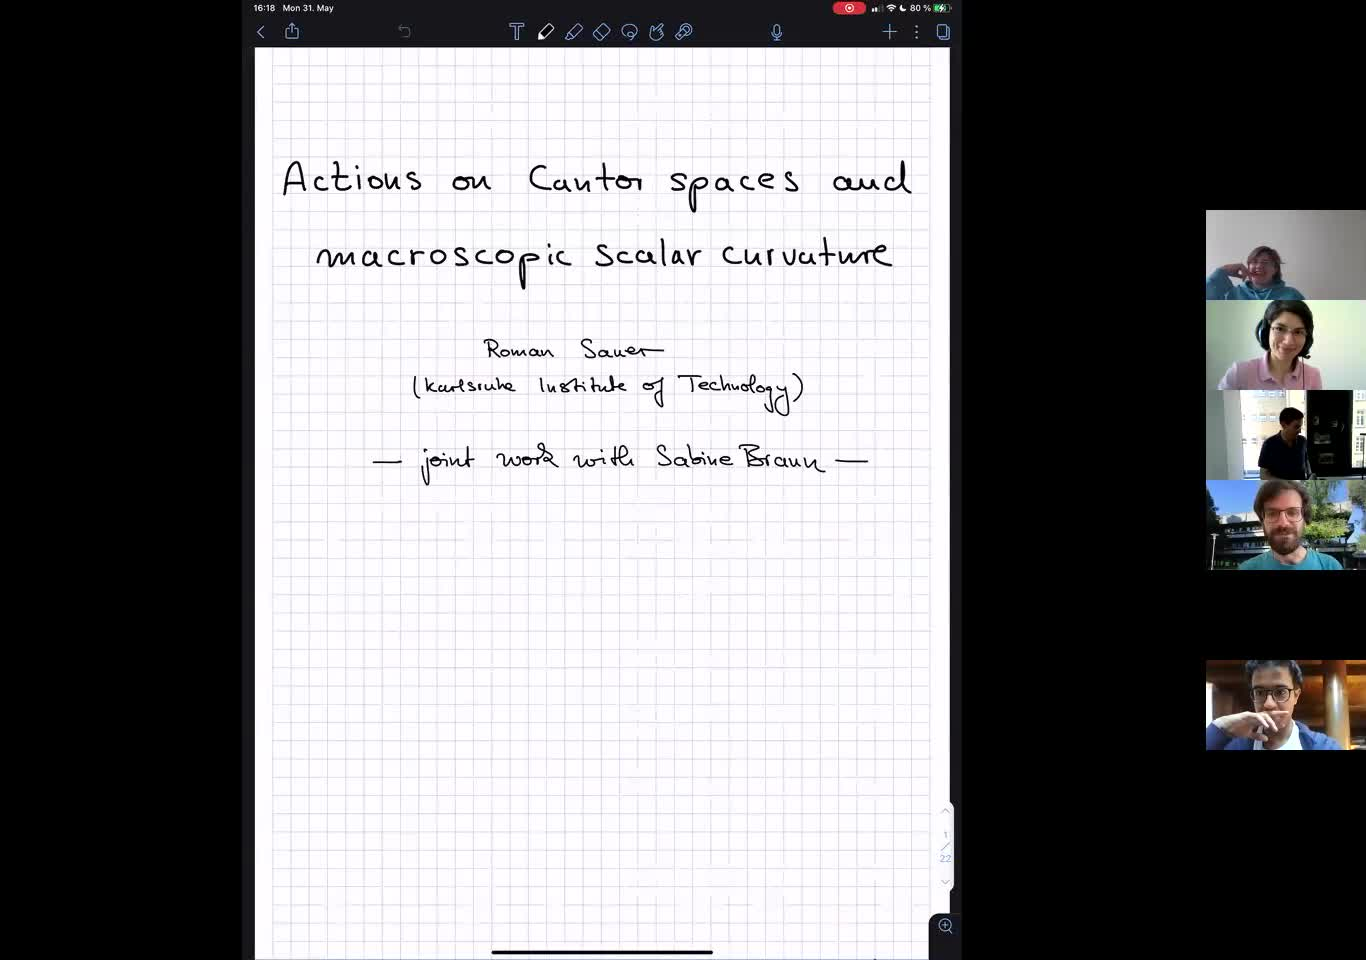 Actions on Cantor spaces and macroscopic scalar curvature